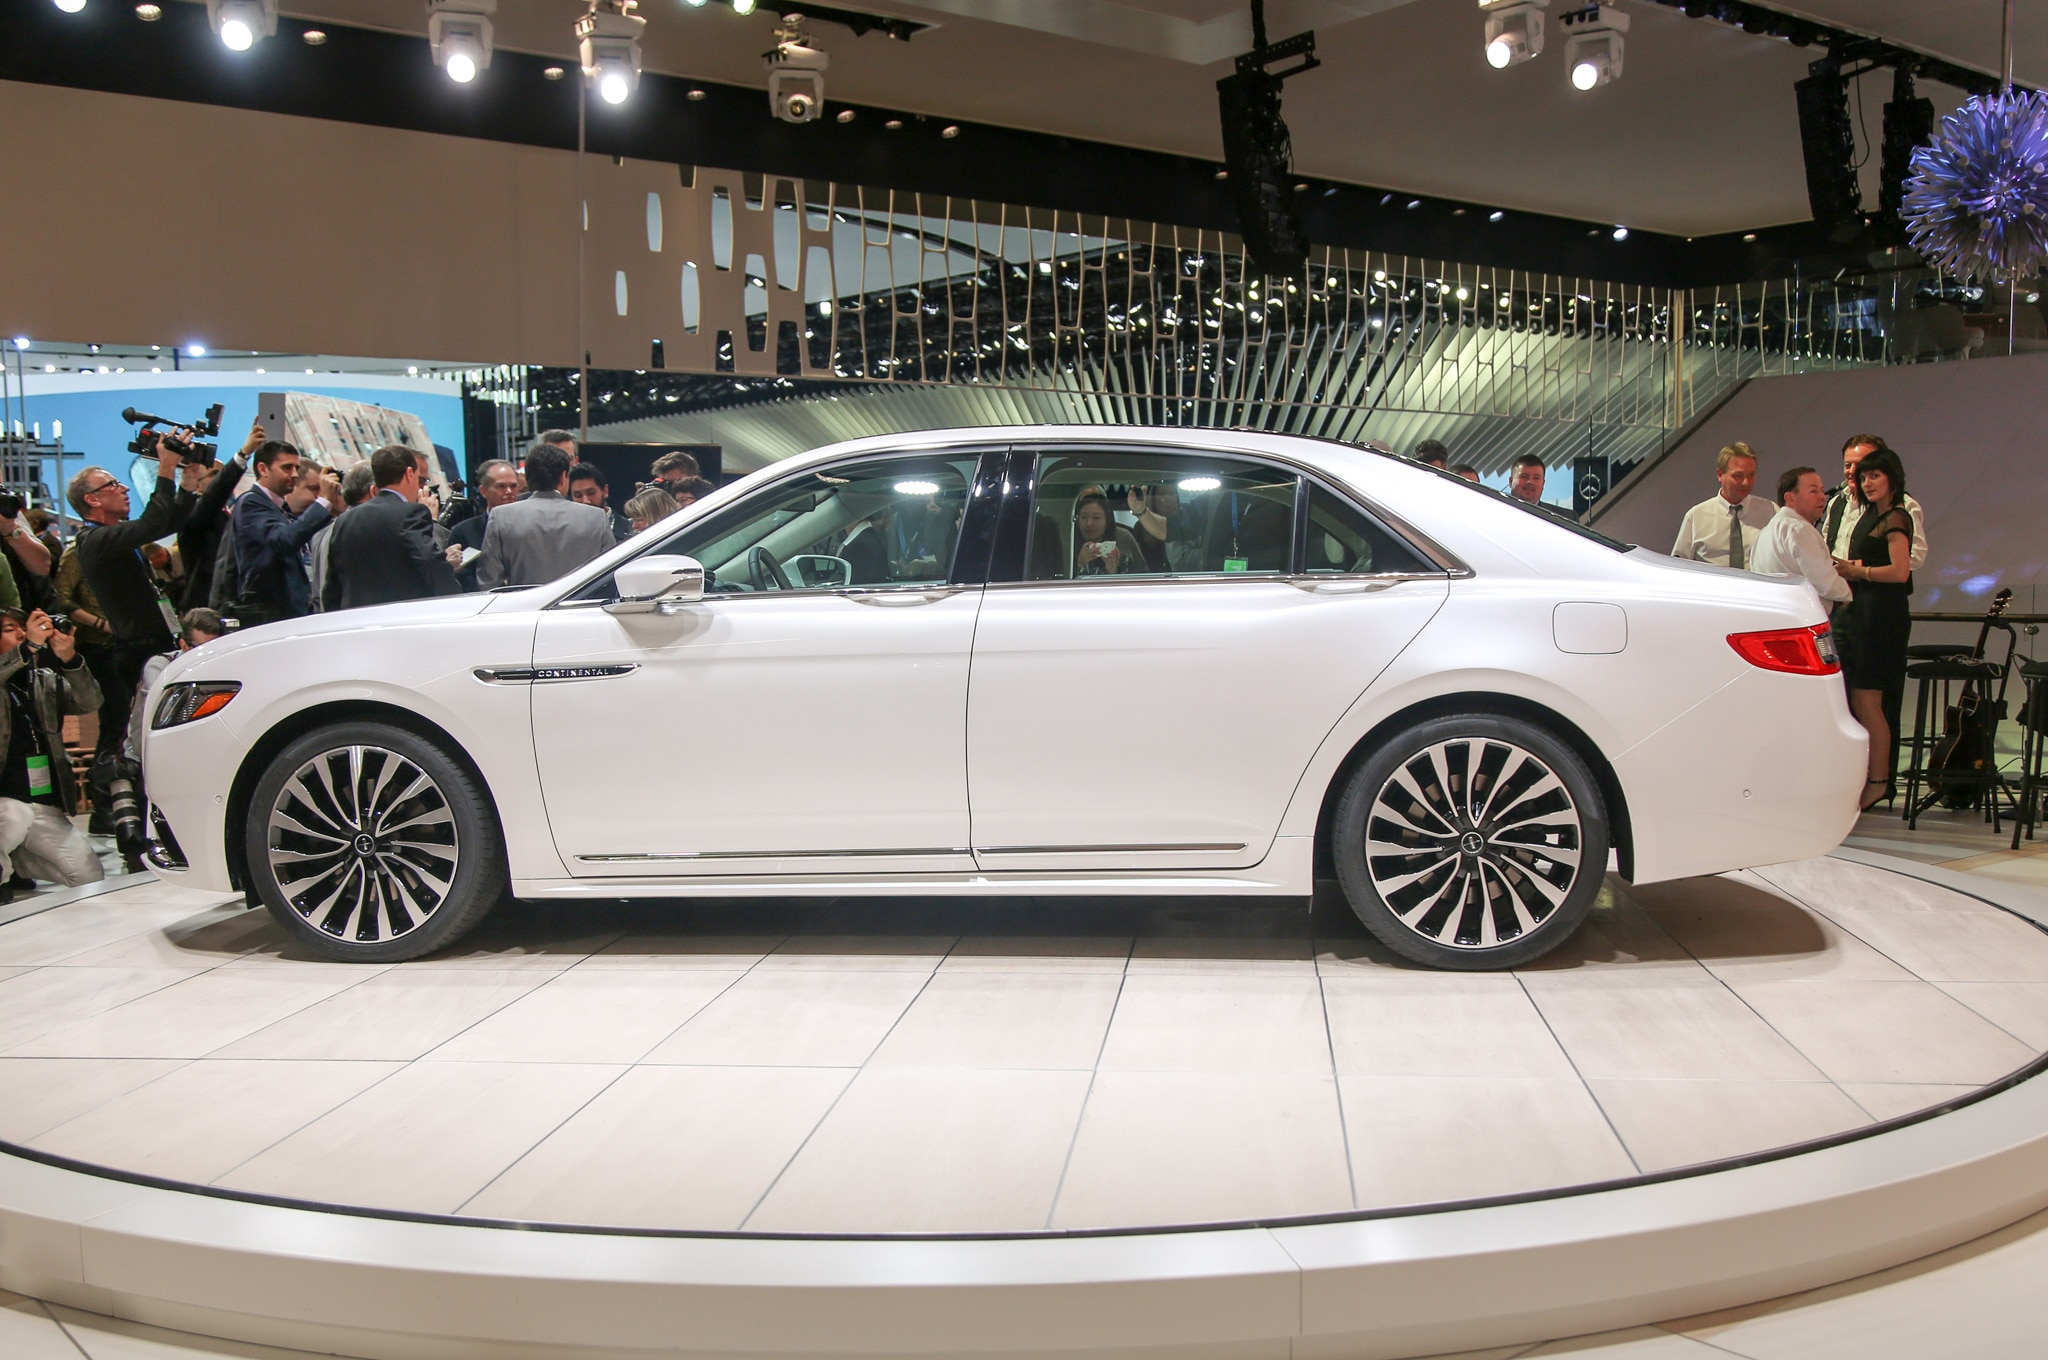 2017-Lincoln-Continental-side1 Outstanding Lincoln Continental New York Auto Show Cars Trend